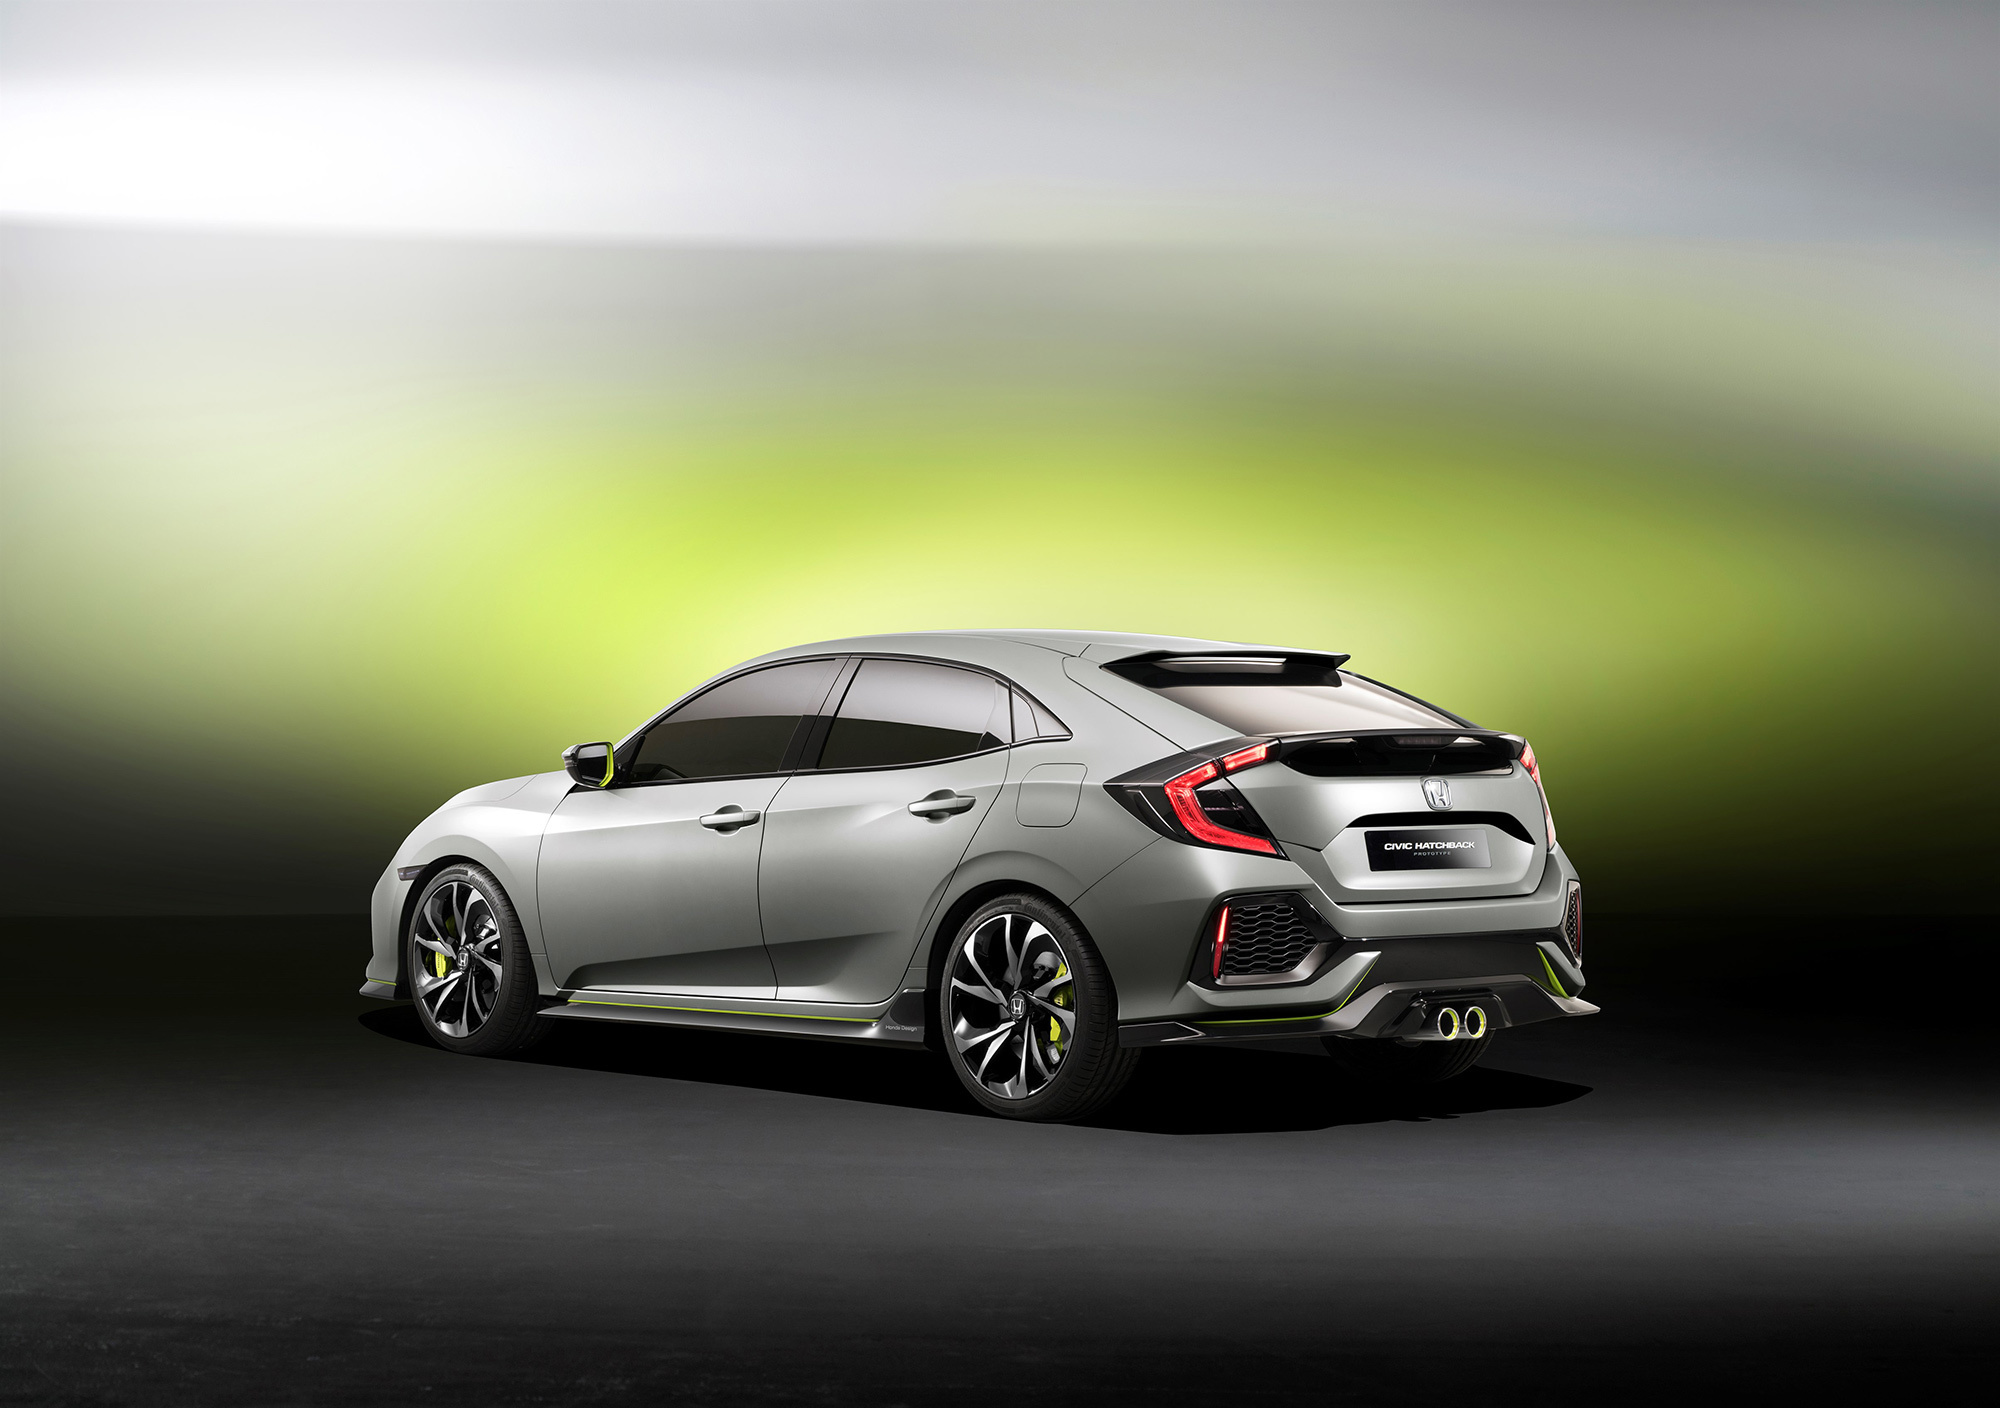 Pictures Of Honda Civic 2017